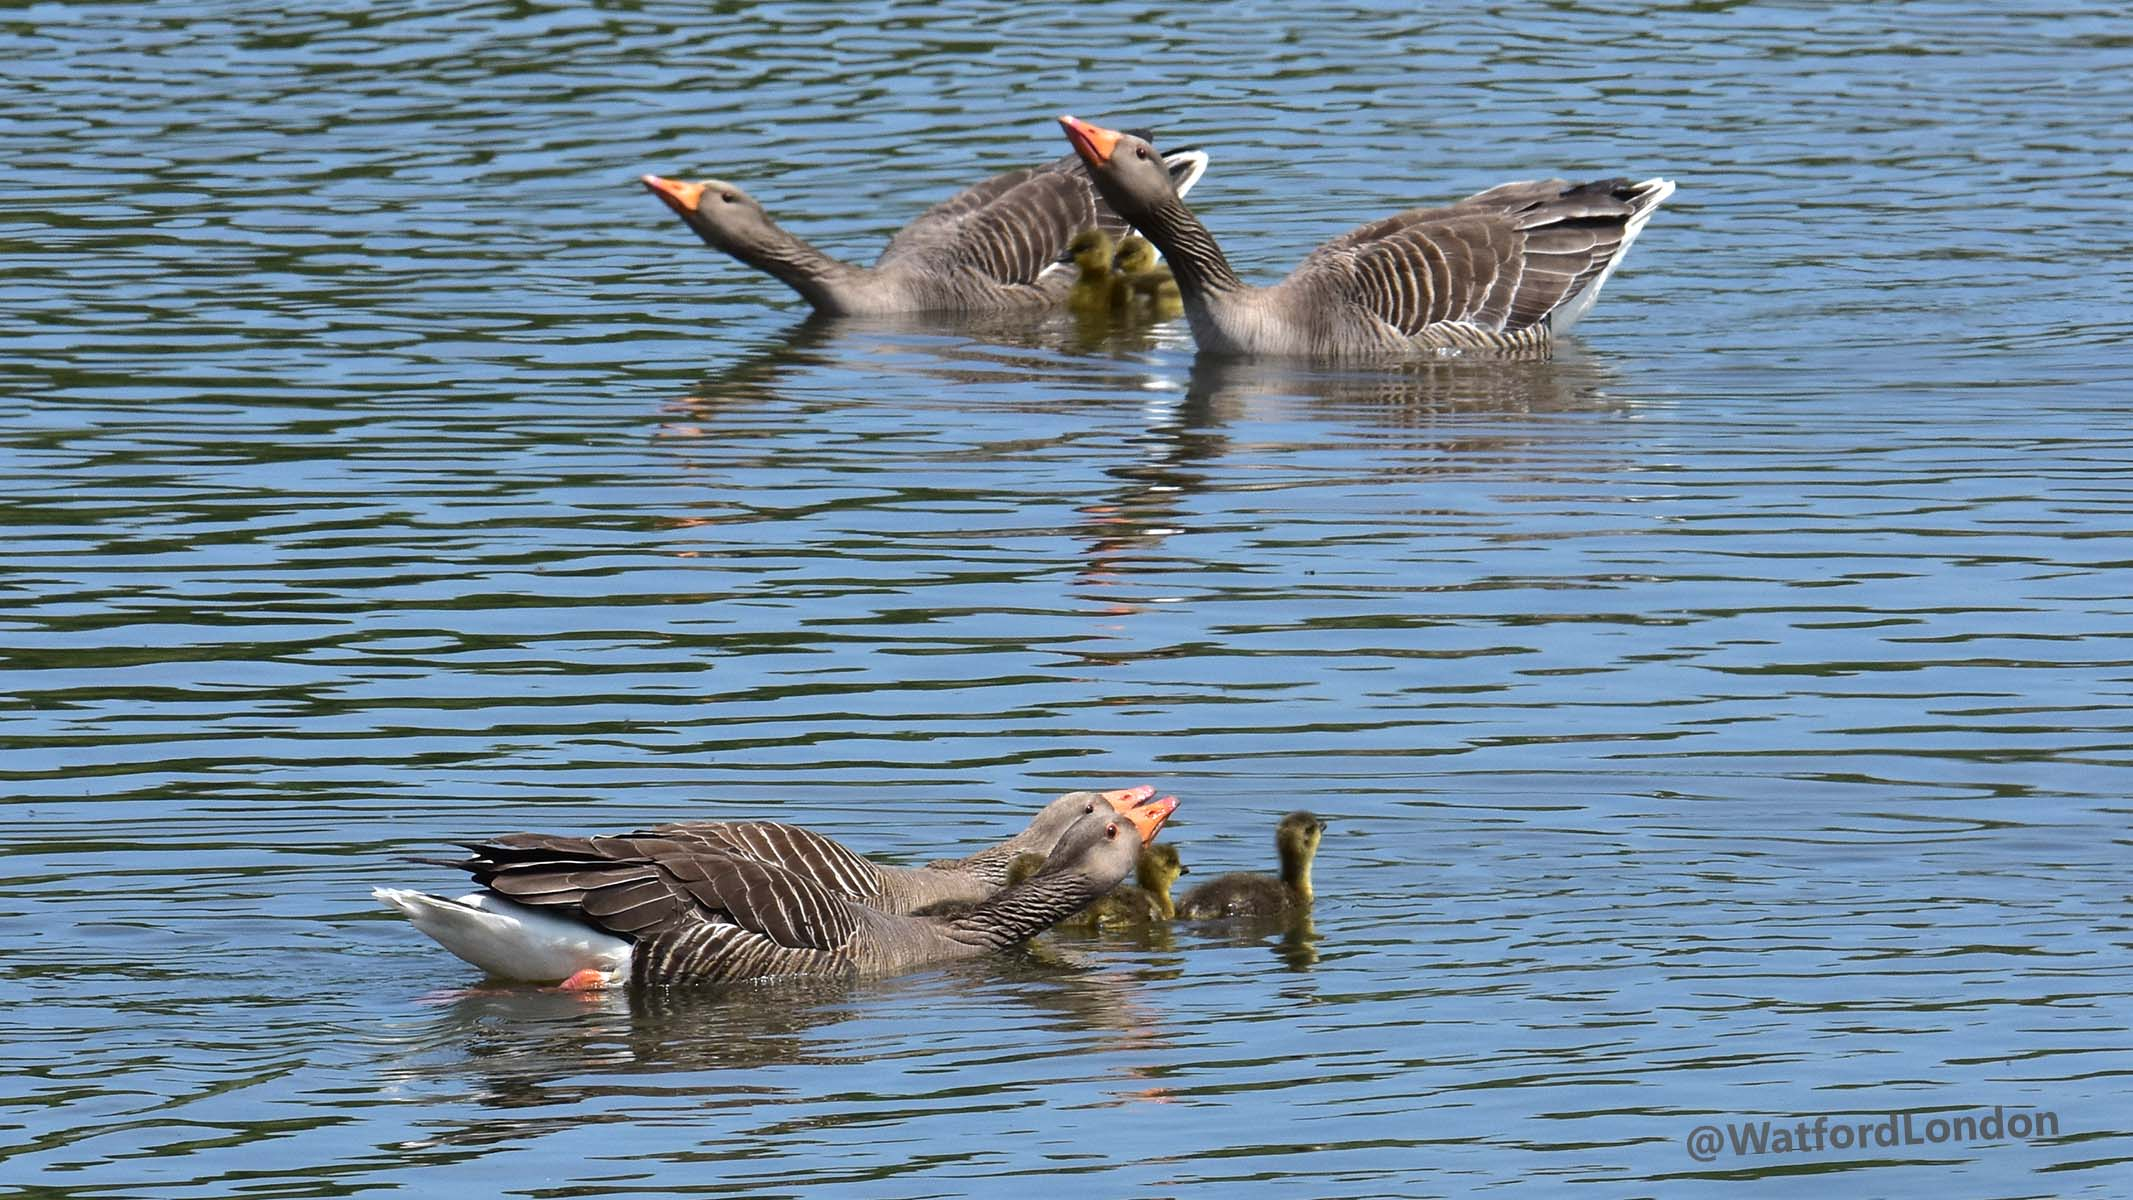 Graylag Geese and their young chicks